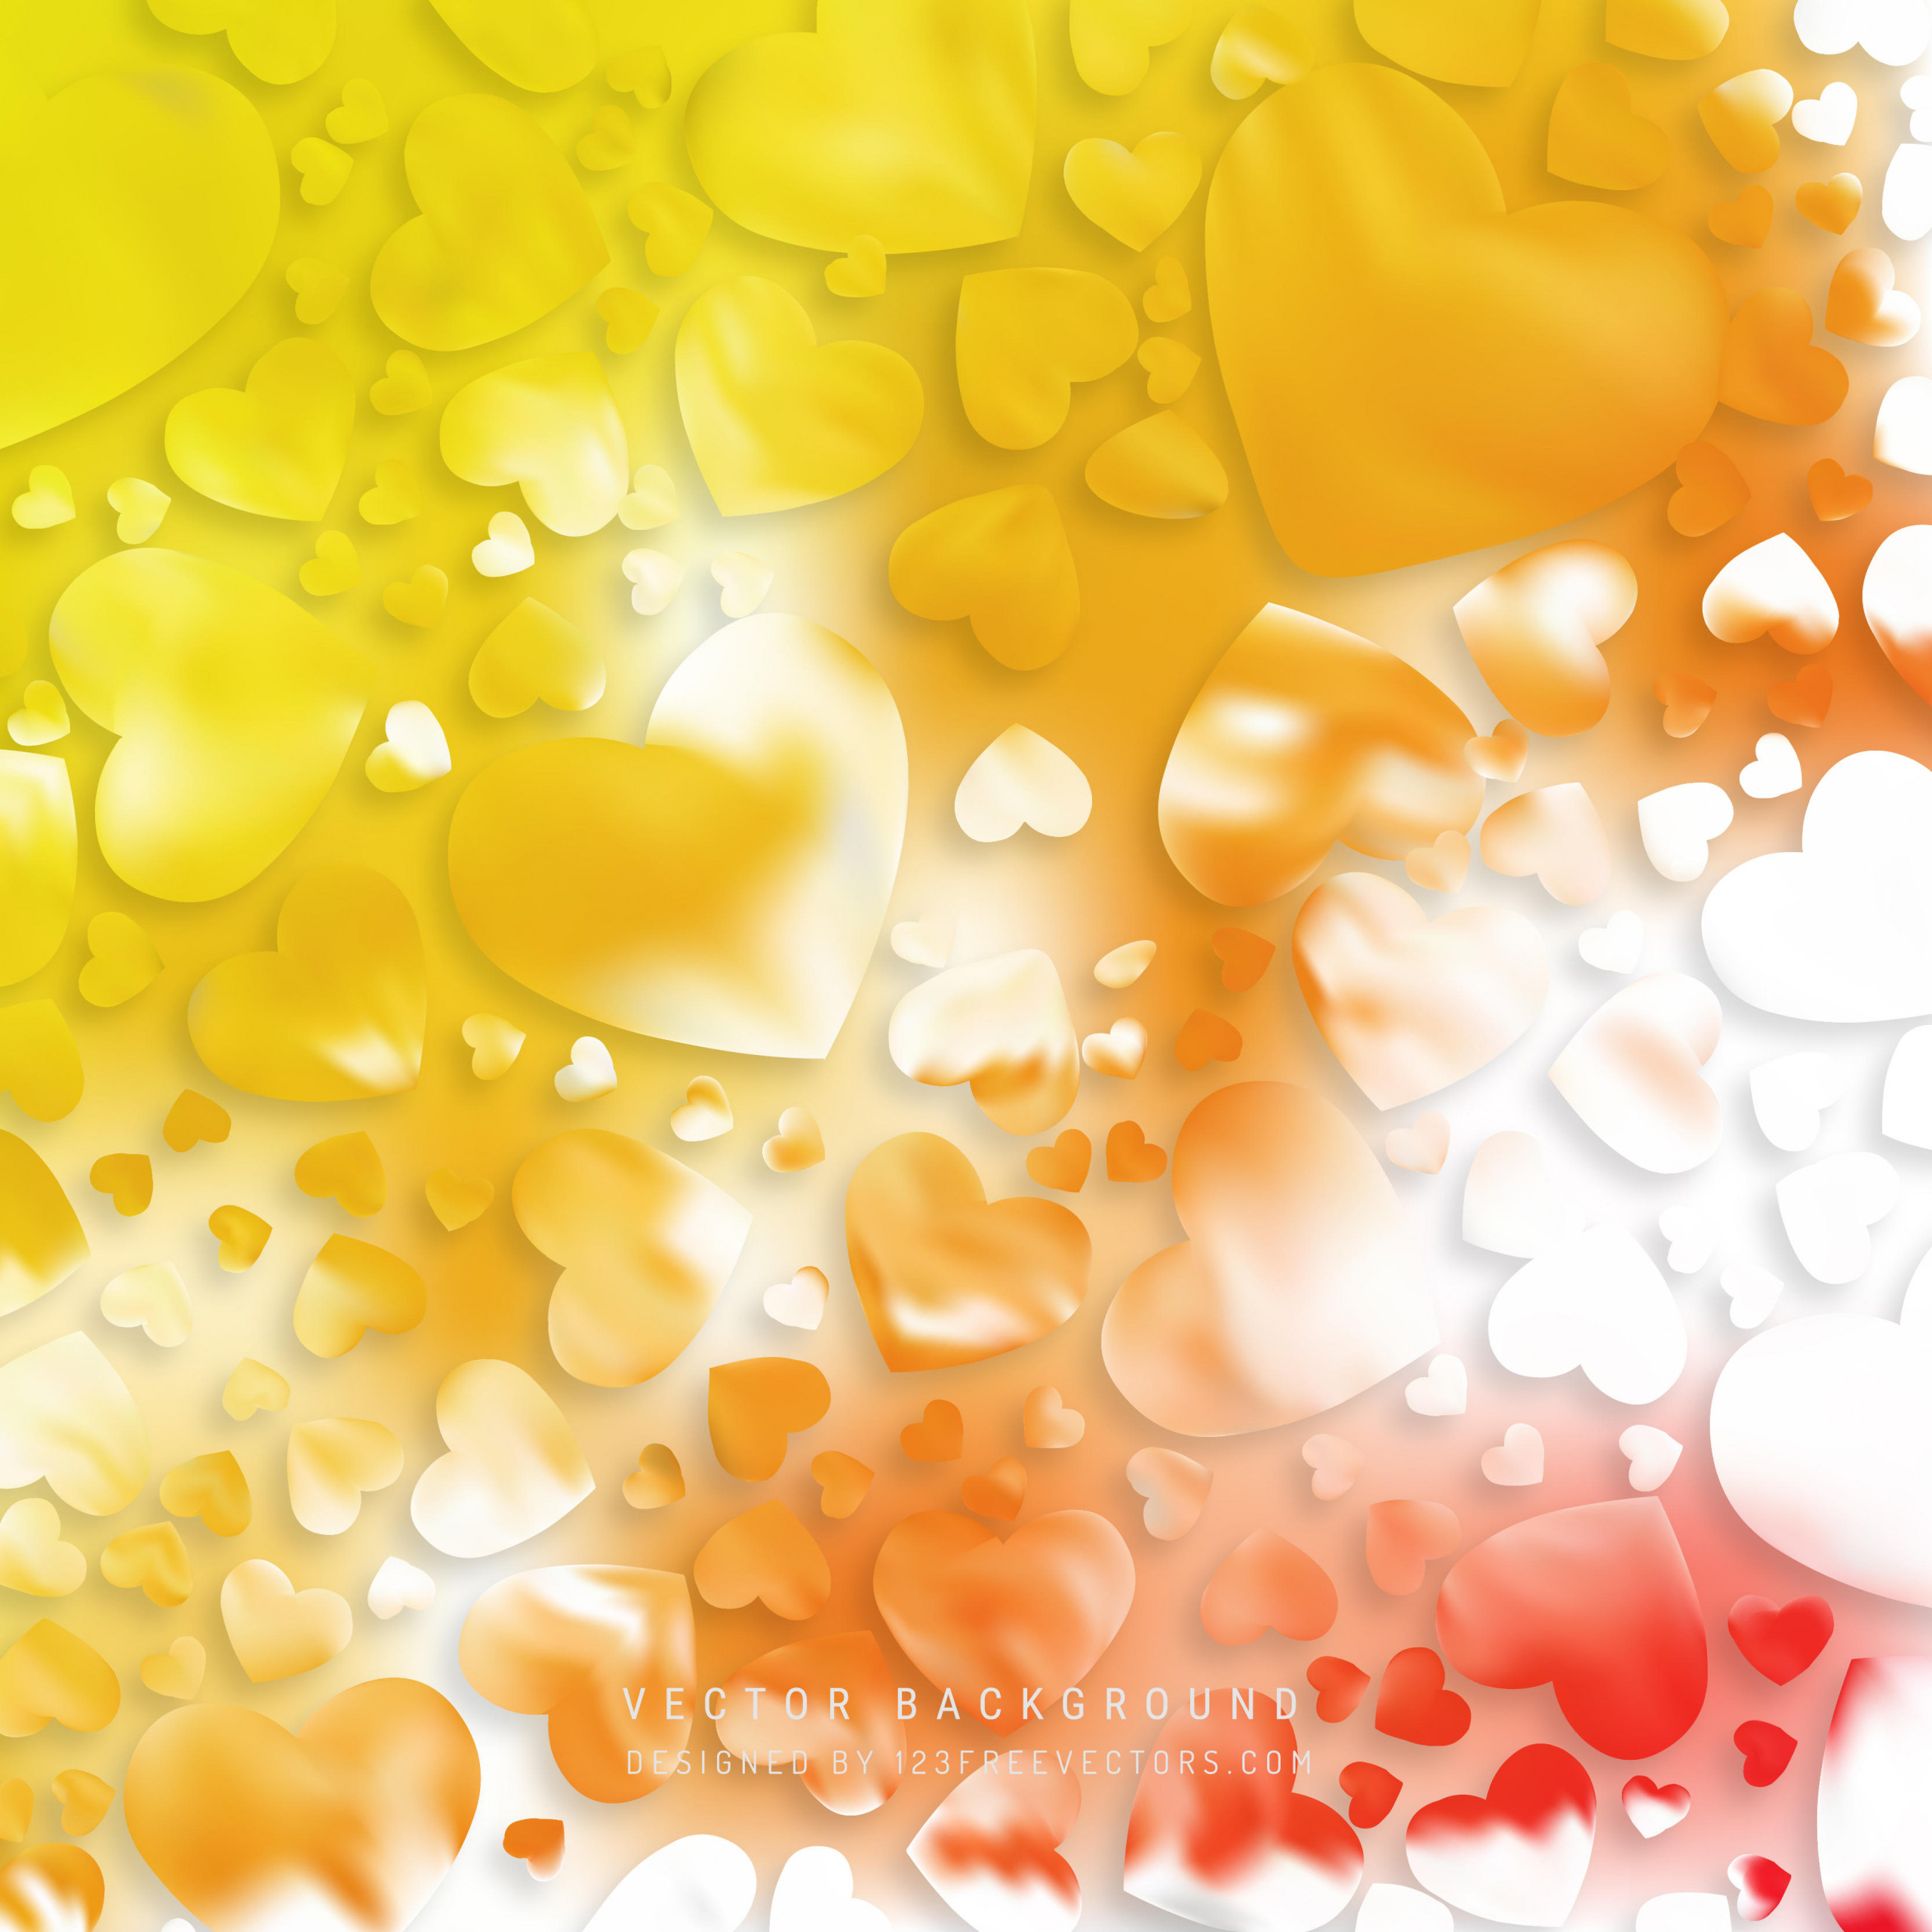 abstract valentines day yellow orange heart background